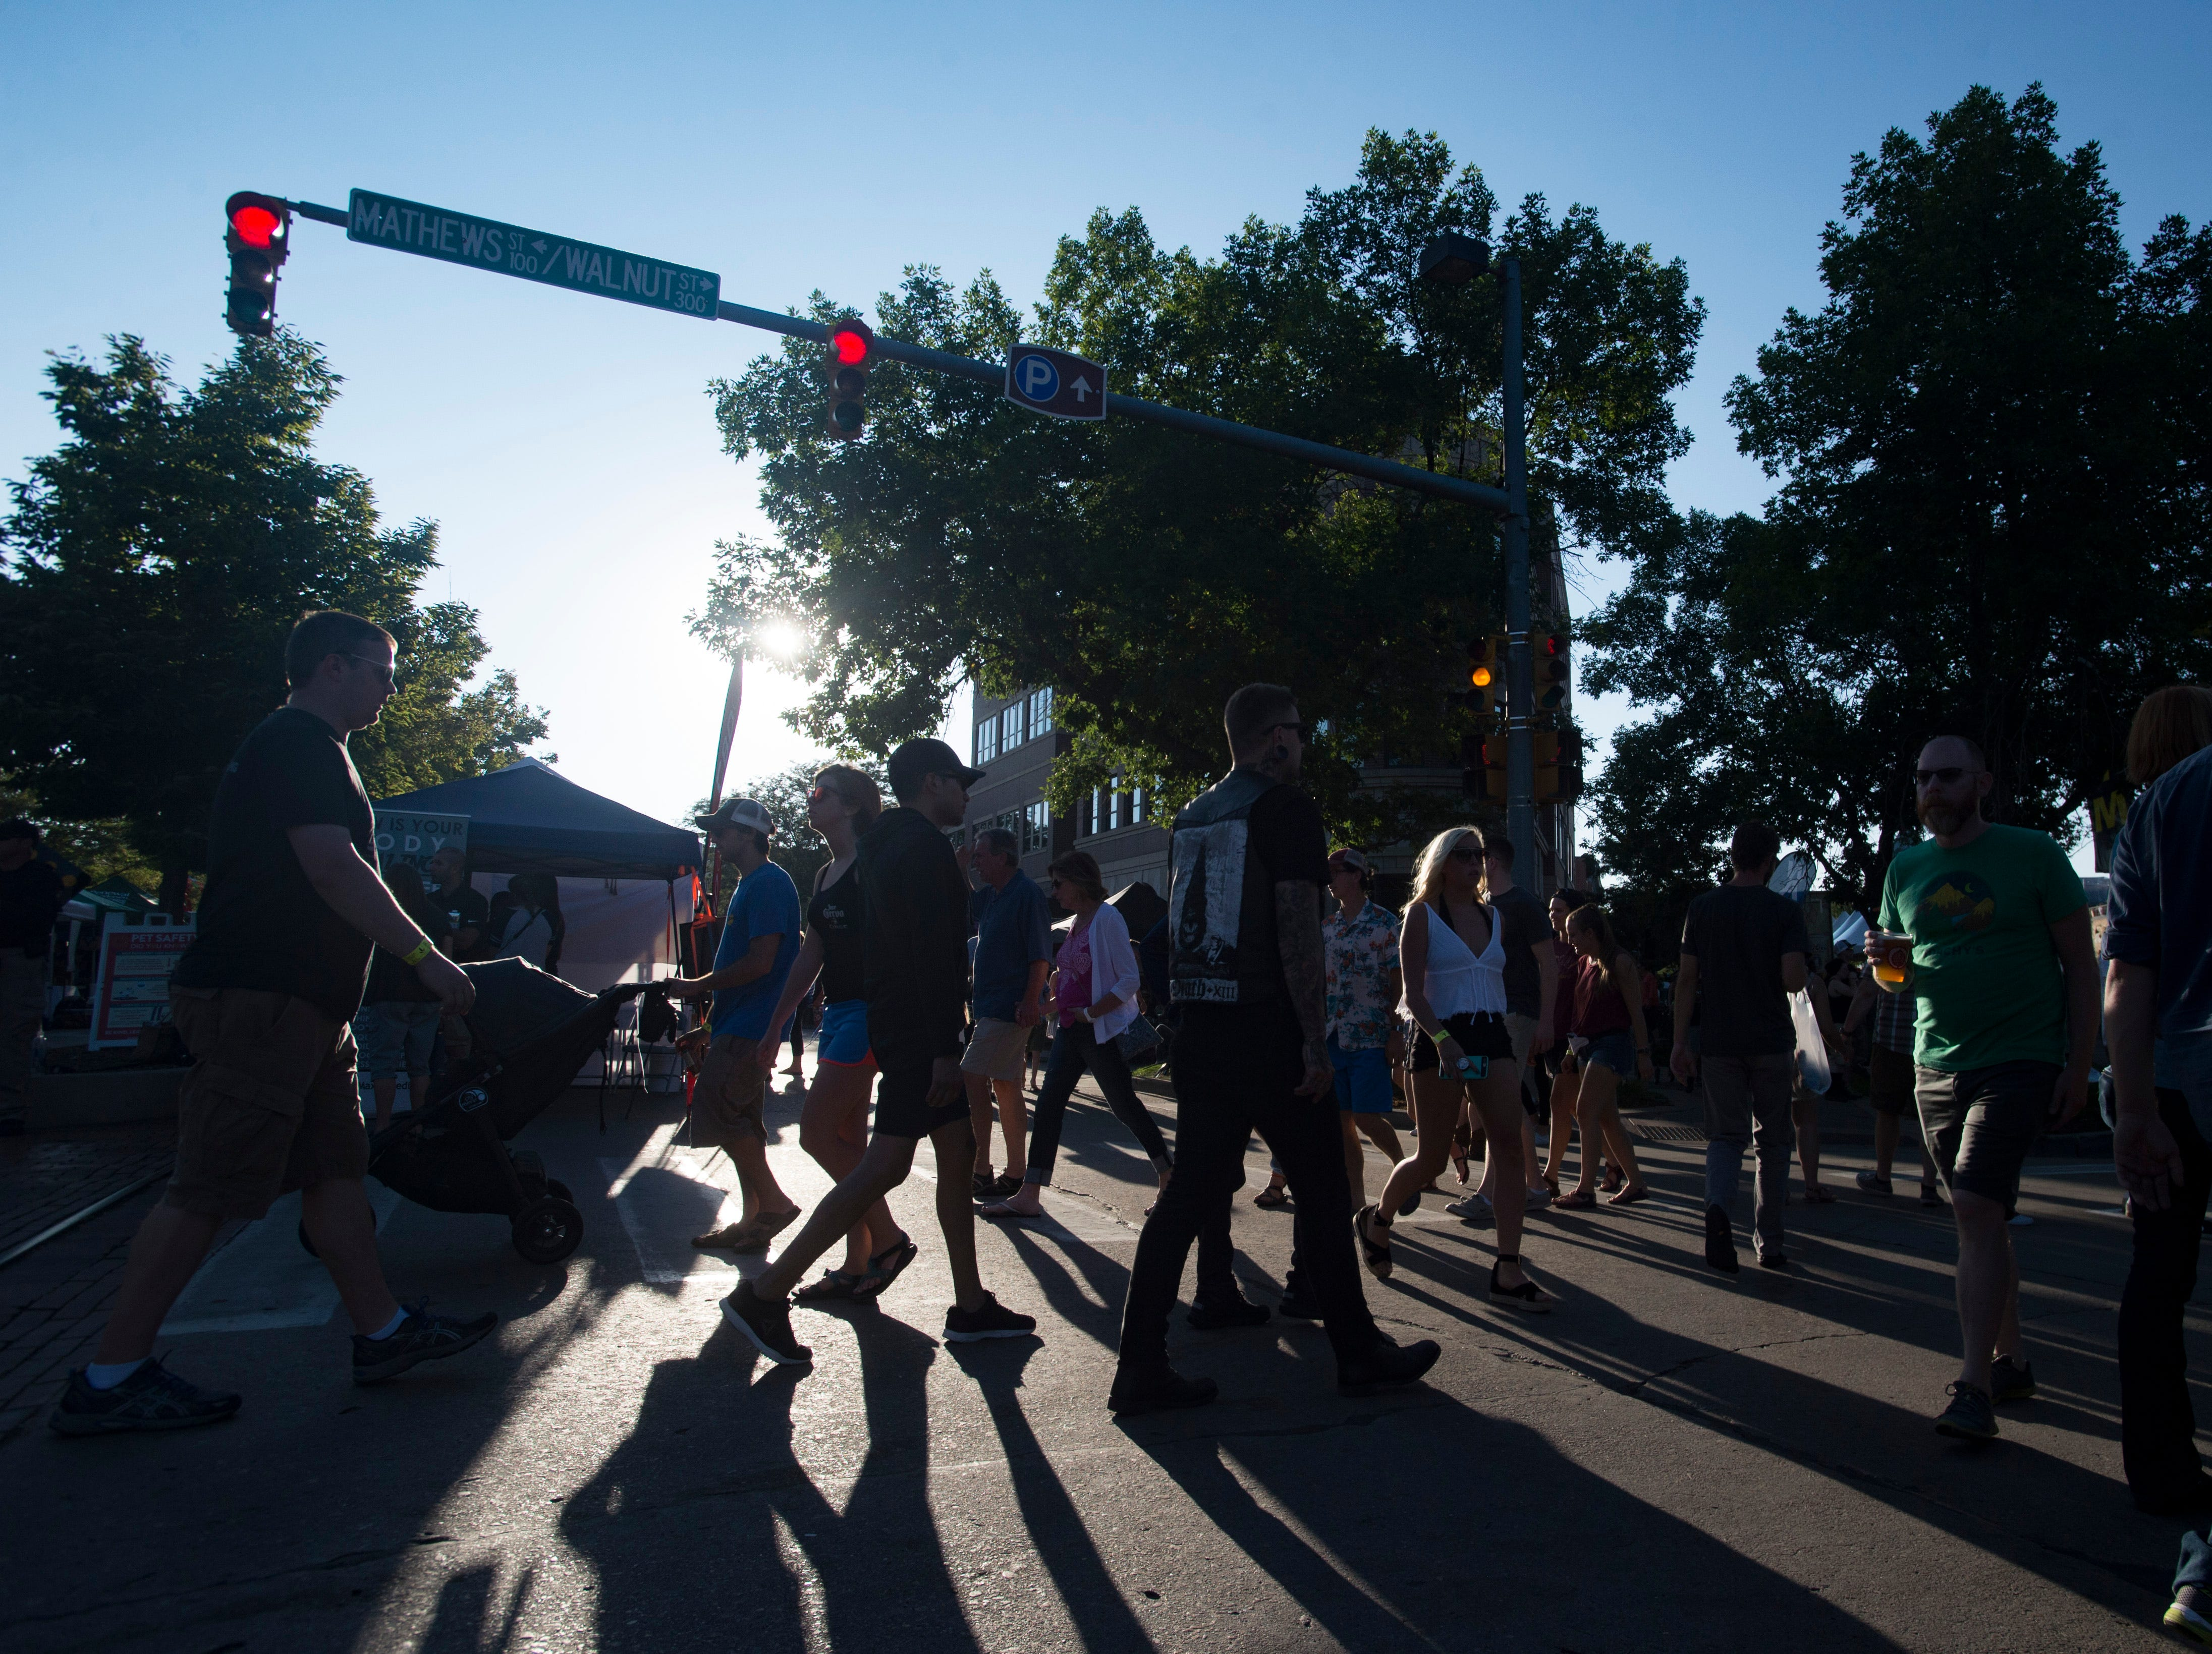 People cast shadows as they cross Mountain Avenue during Bohemian Nights at NewWestFest in Old Town on Saturday, August 11, 2018.